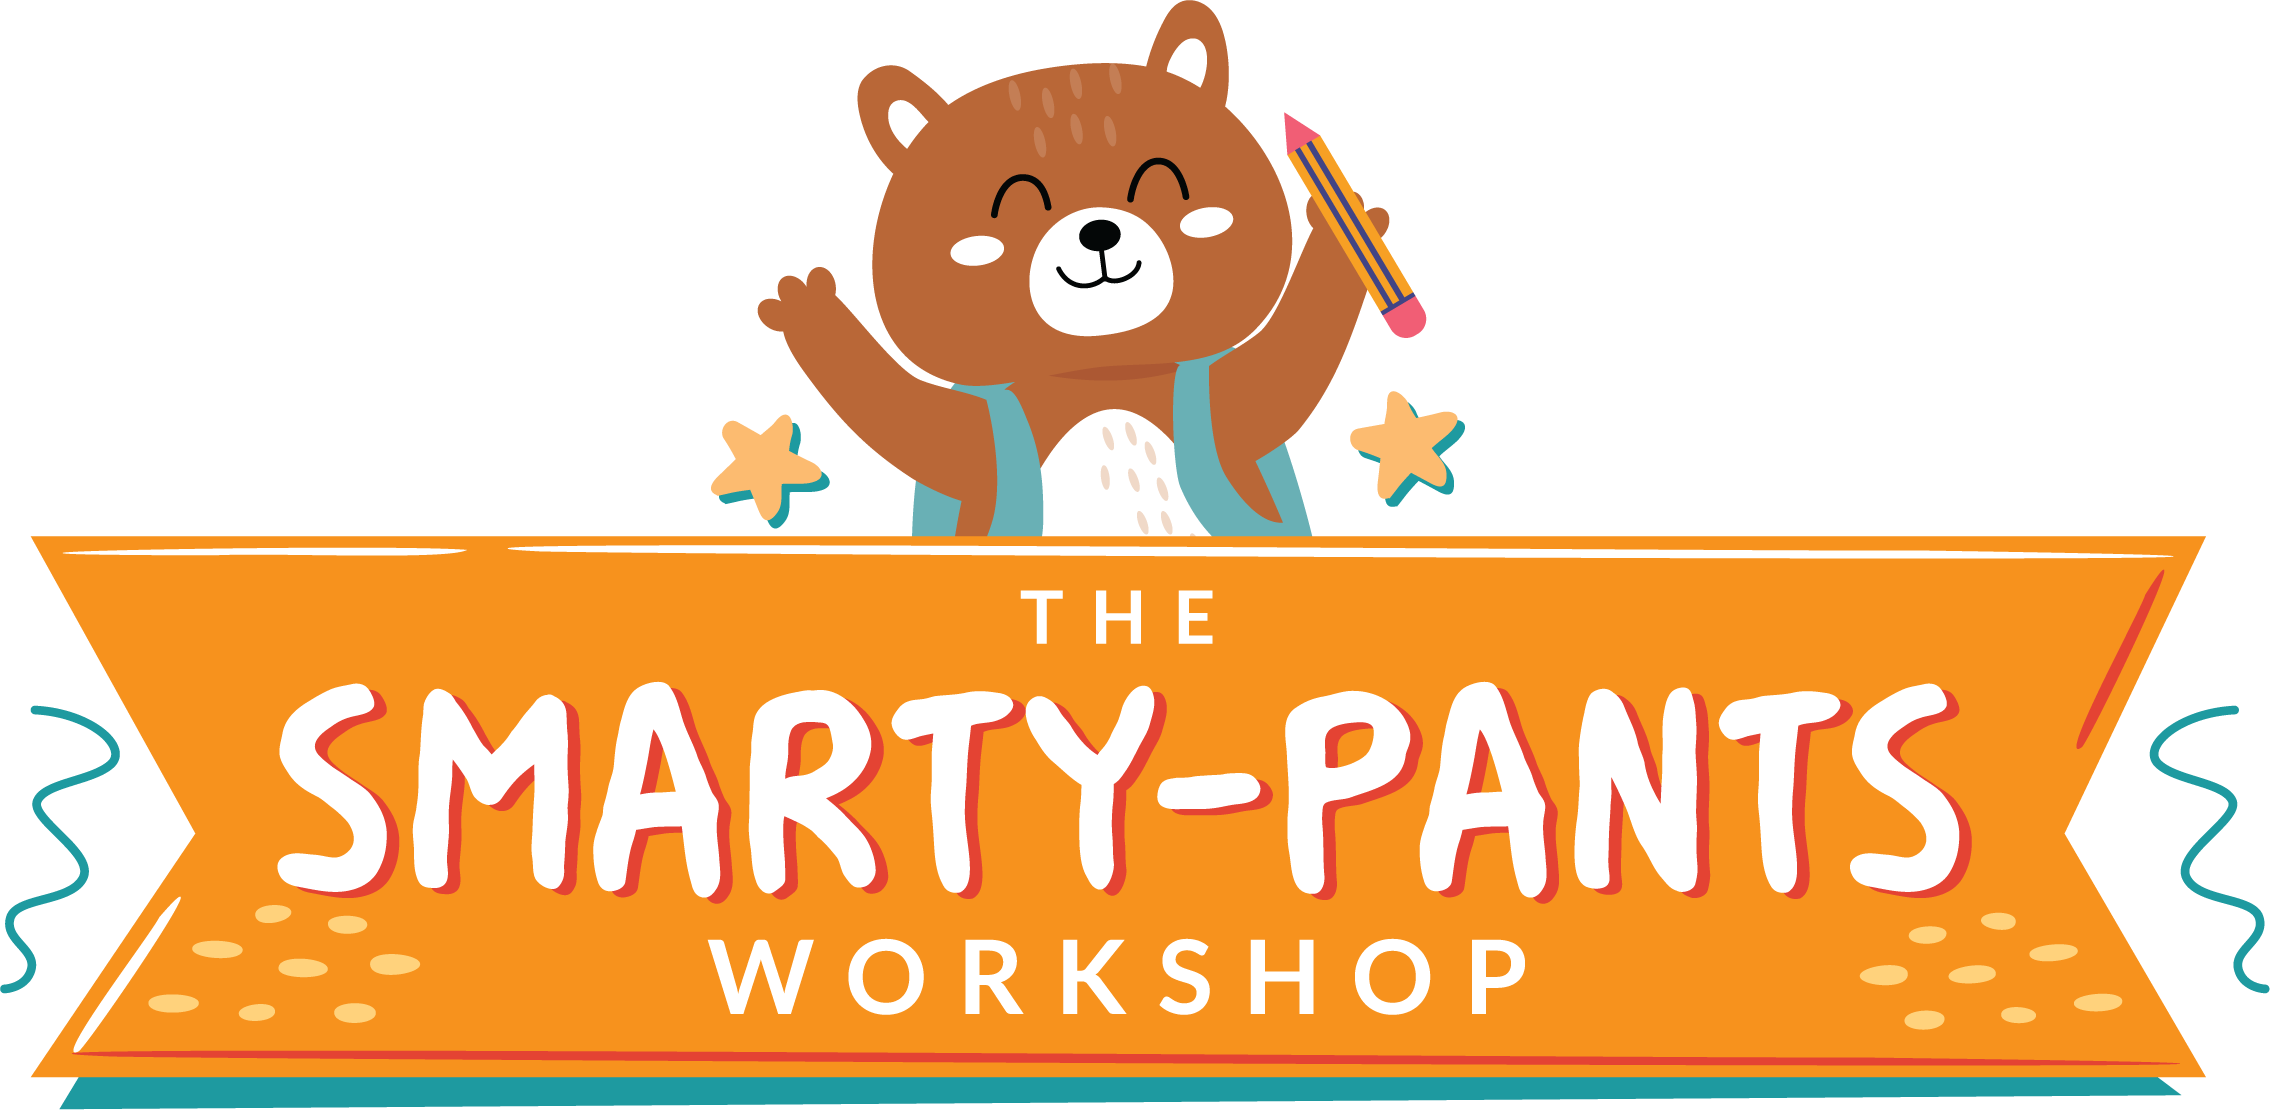 """The Smarty Pants Workshop <span class=""""more""""> The Smarty – pants workshop is an absolute must for any pre-school and is aimed at informing teachers and staff on all matters """"sexual abuse – related"""", as well as empowering teachers and staff to create awareness of body safety issues, for the children in their care, in an age appropriate and child-friendly manner.</span>"""